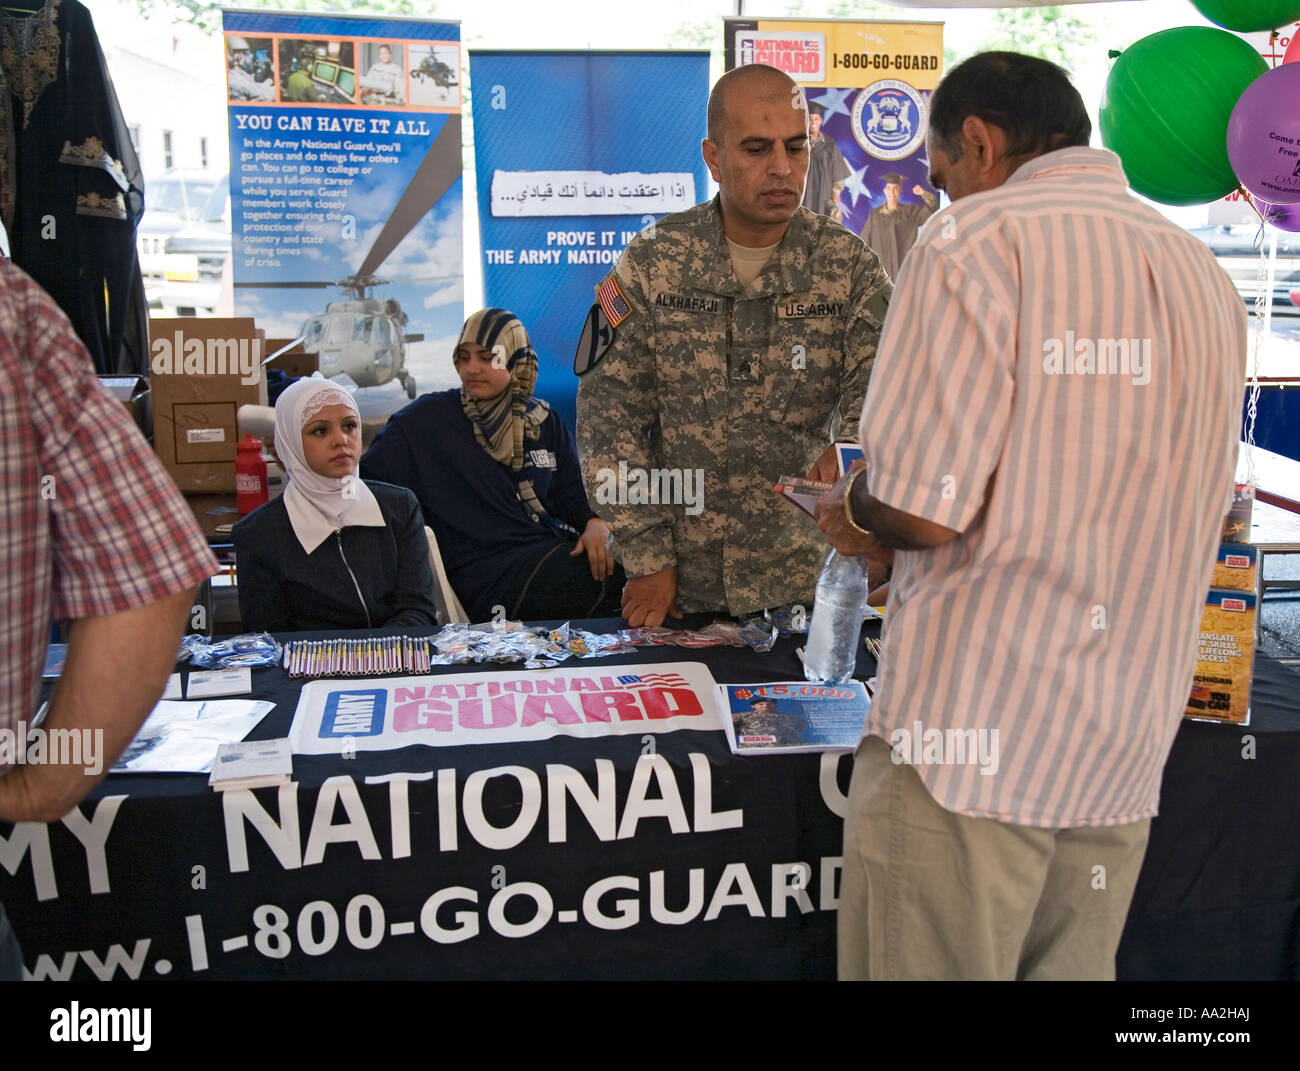 Dearborn Michigan A recruiting booth for the Army National Guard at the Arab International Festival - Stock Image